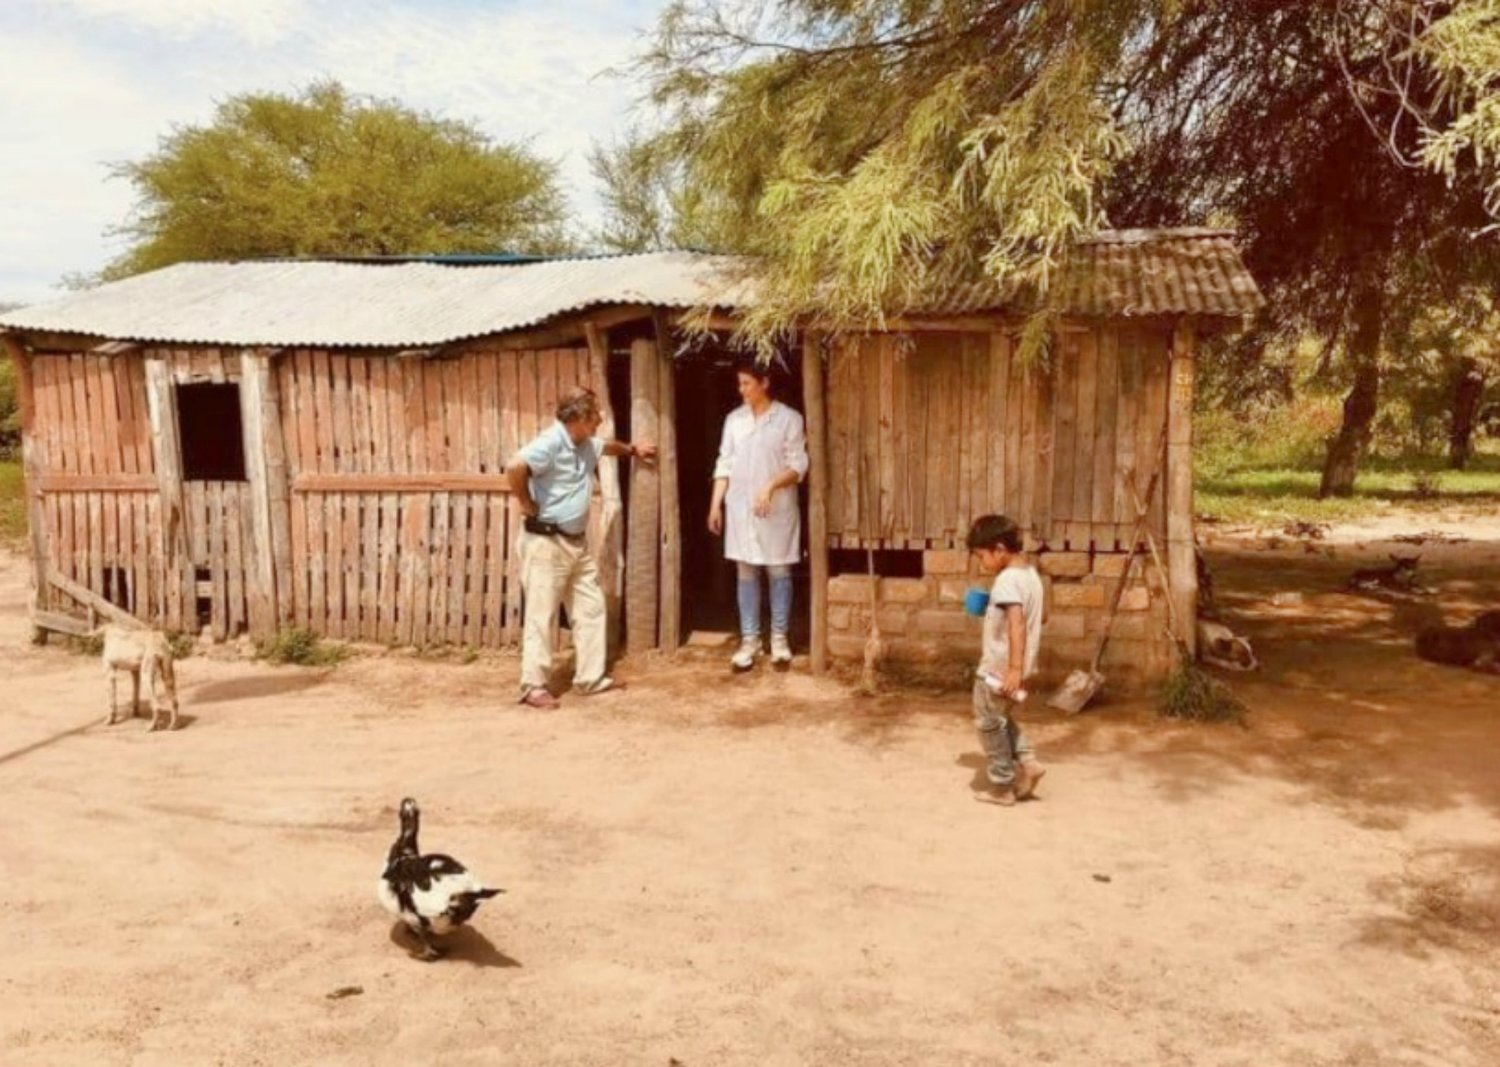 Through Comité Cívico Argentino, $500 was raised to build this school in the Northern Part of Argentina with activist Albert Guini.